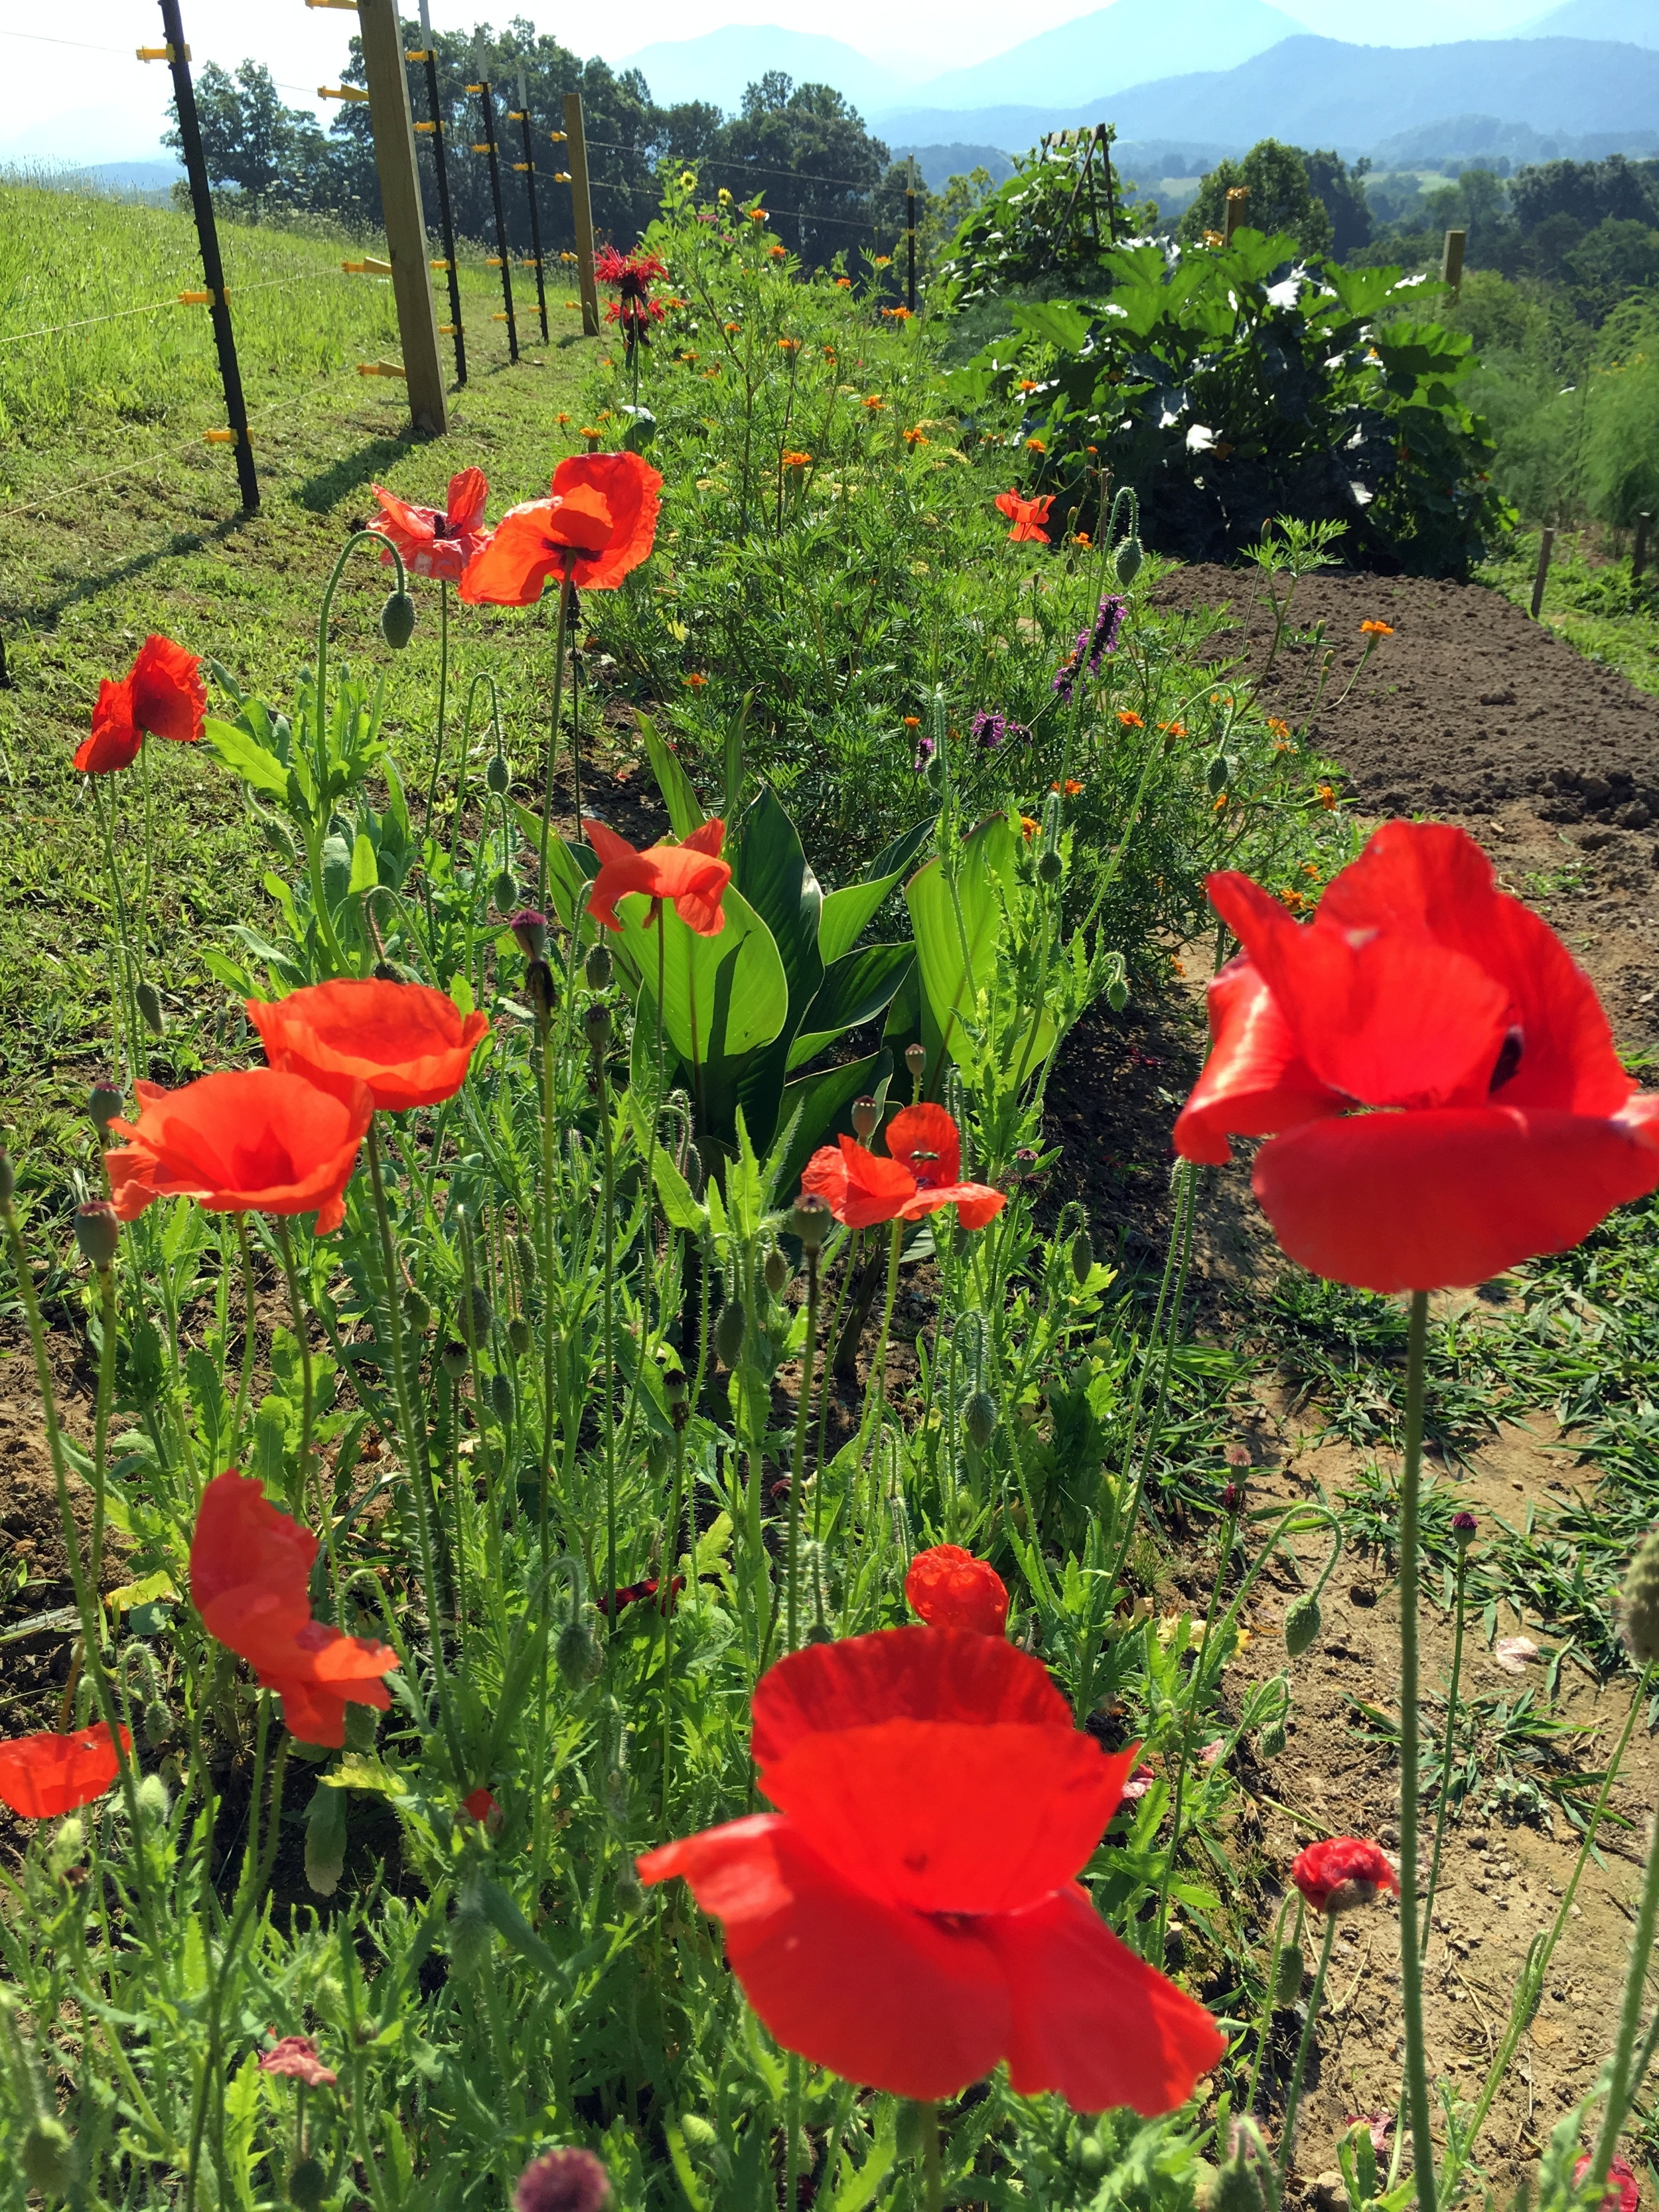 As wonderful as the vegetables are, it's the flowers that make me smile, especially these poppies, a daily reminder of my friends at  Tall Poppy Writers .